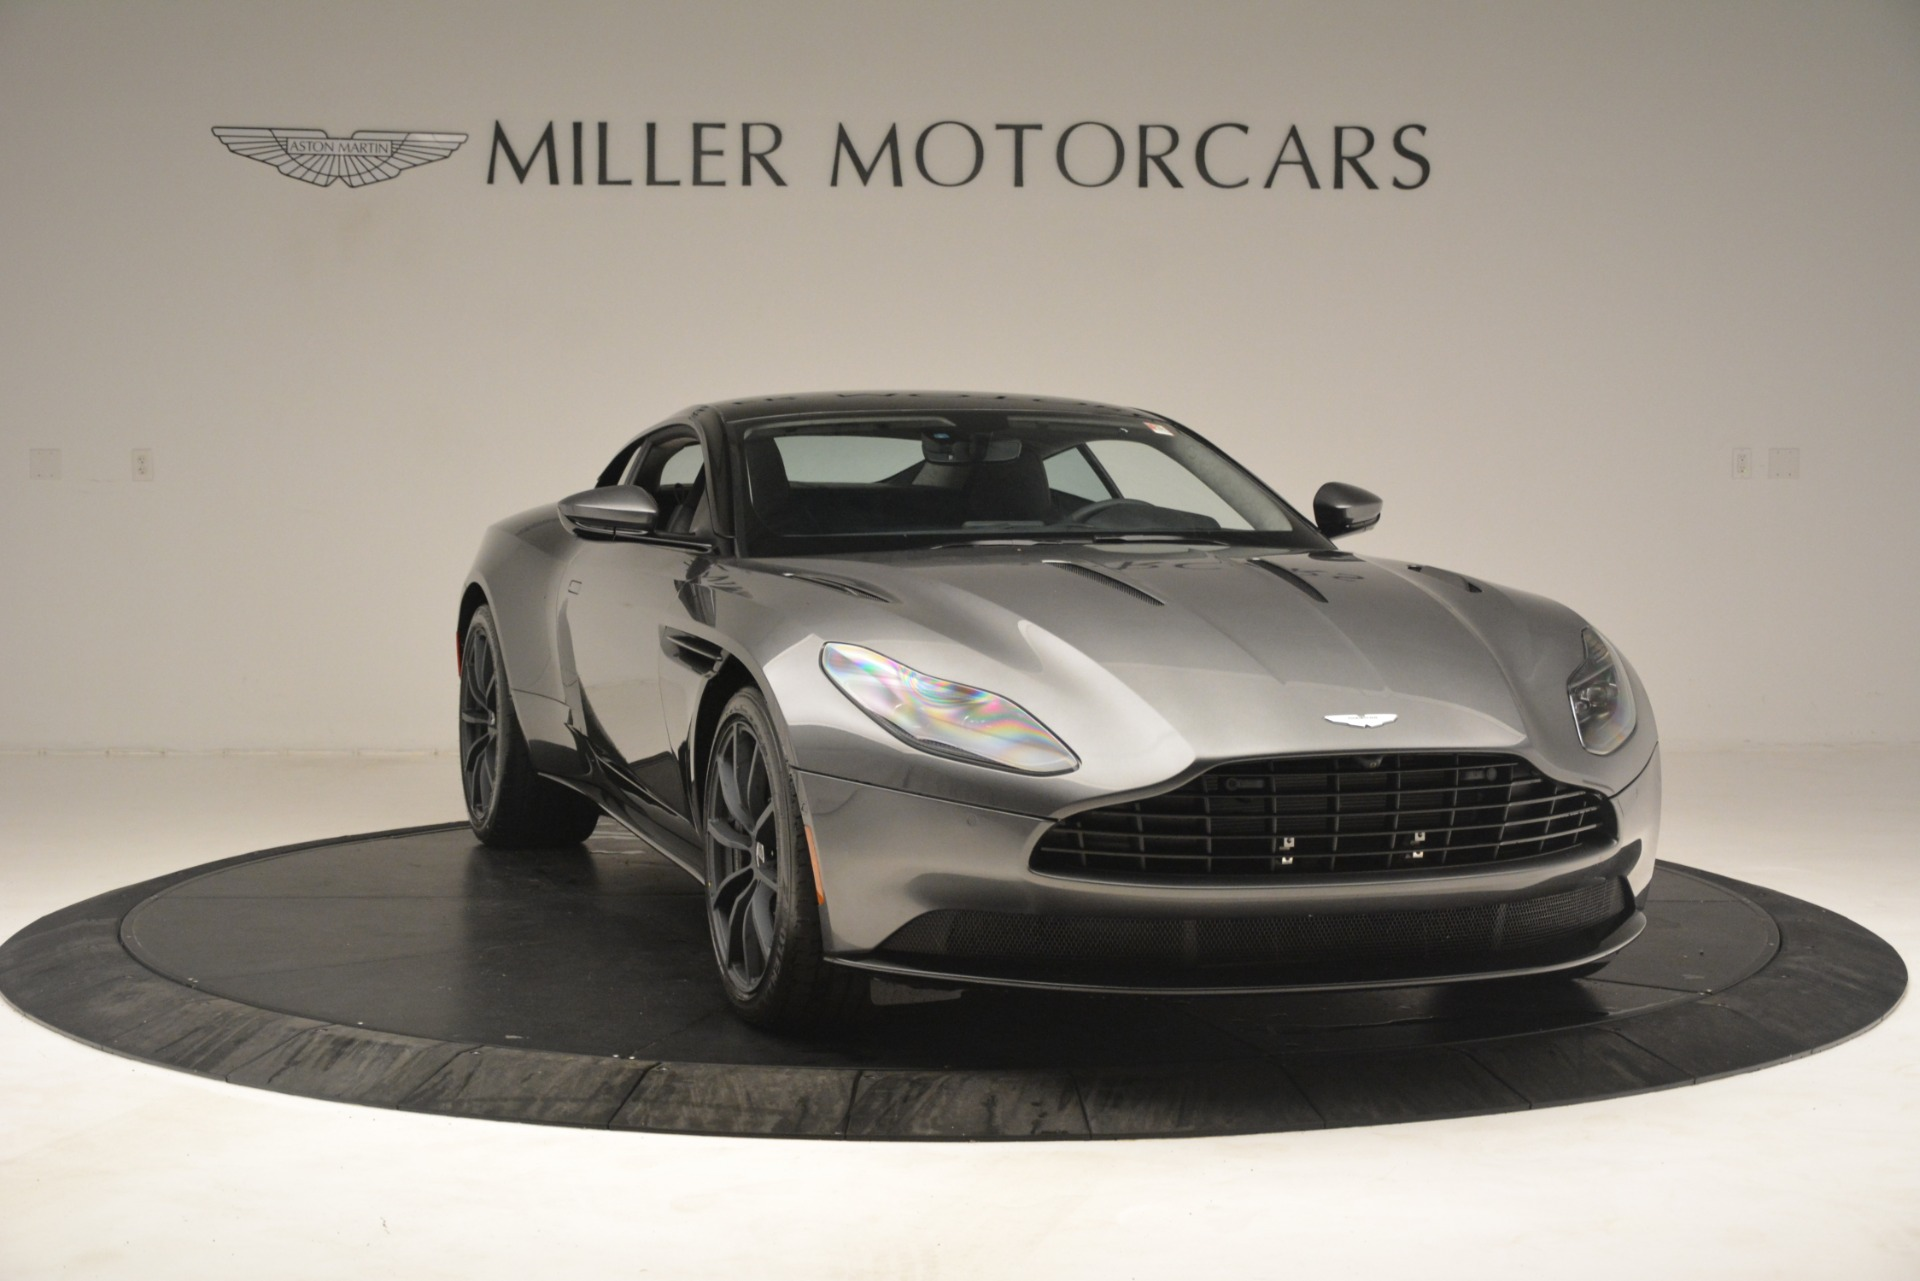 New 2019 Aston Martin DB11 V12 AMR Coupe For Sale In Greenwich, CT 3123_p11